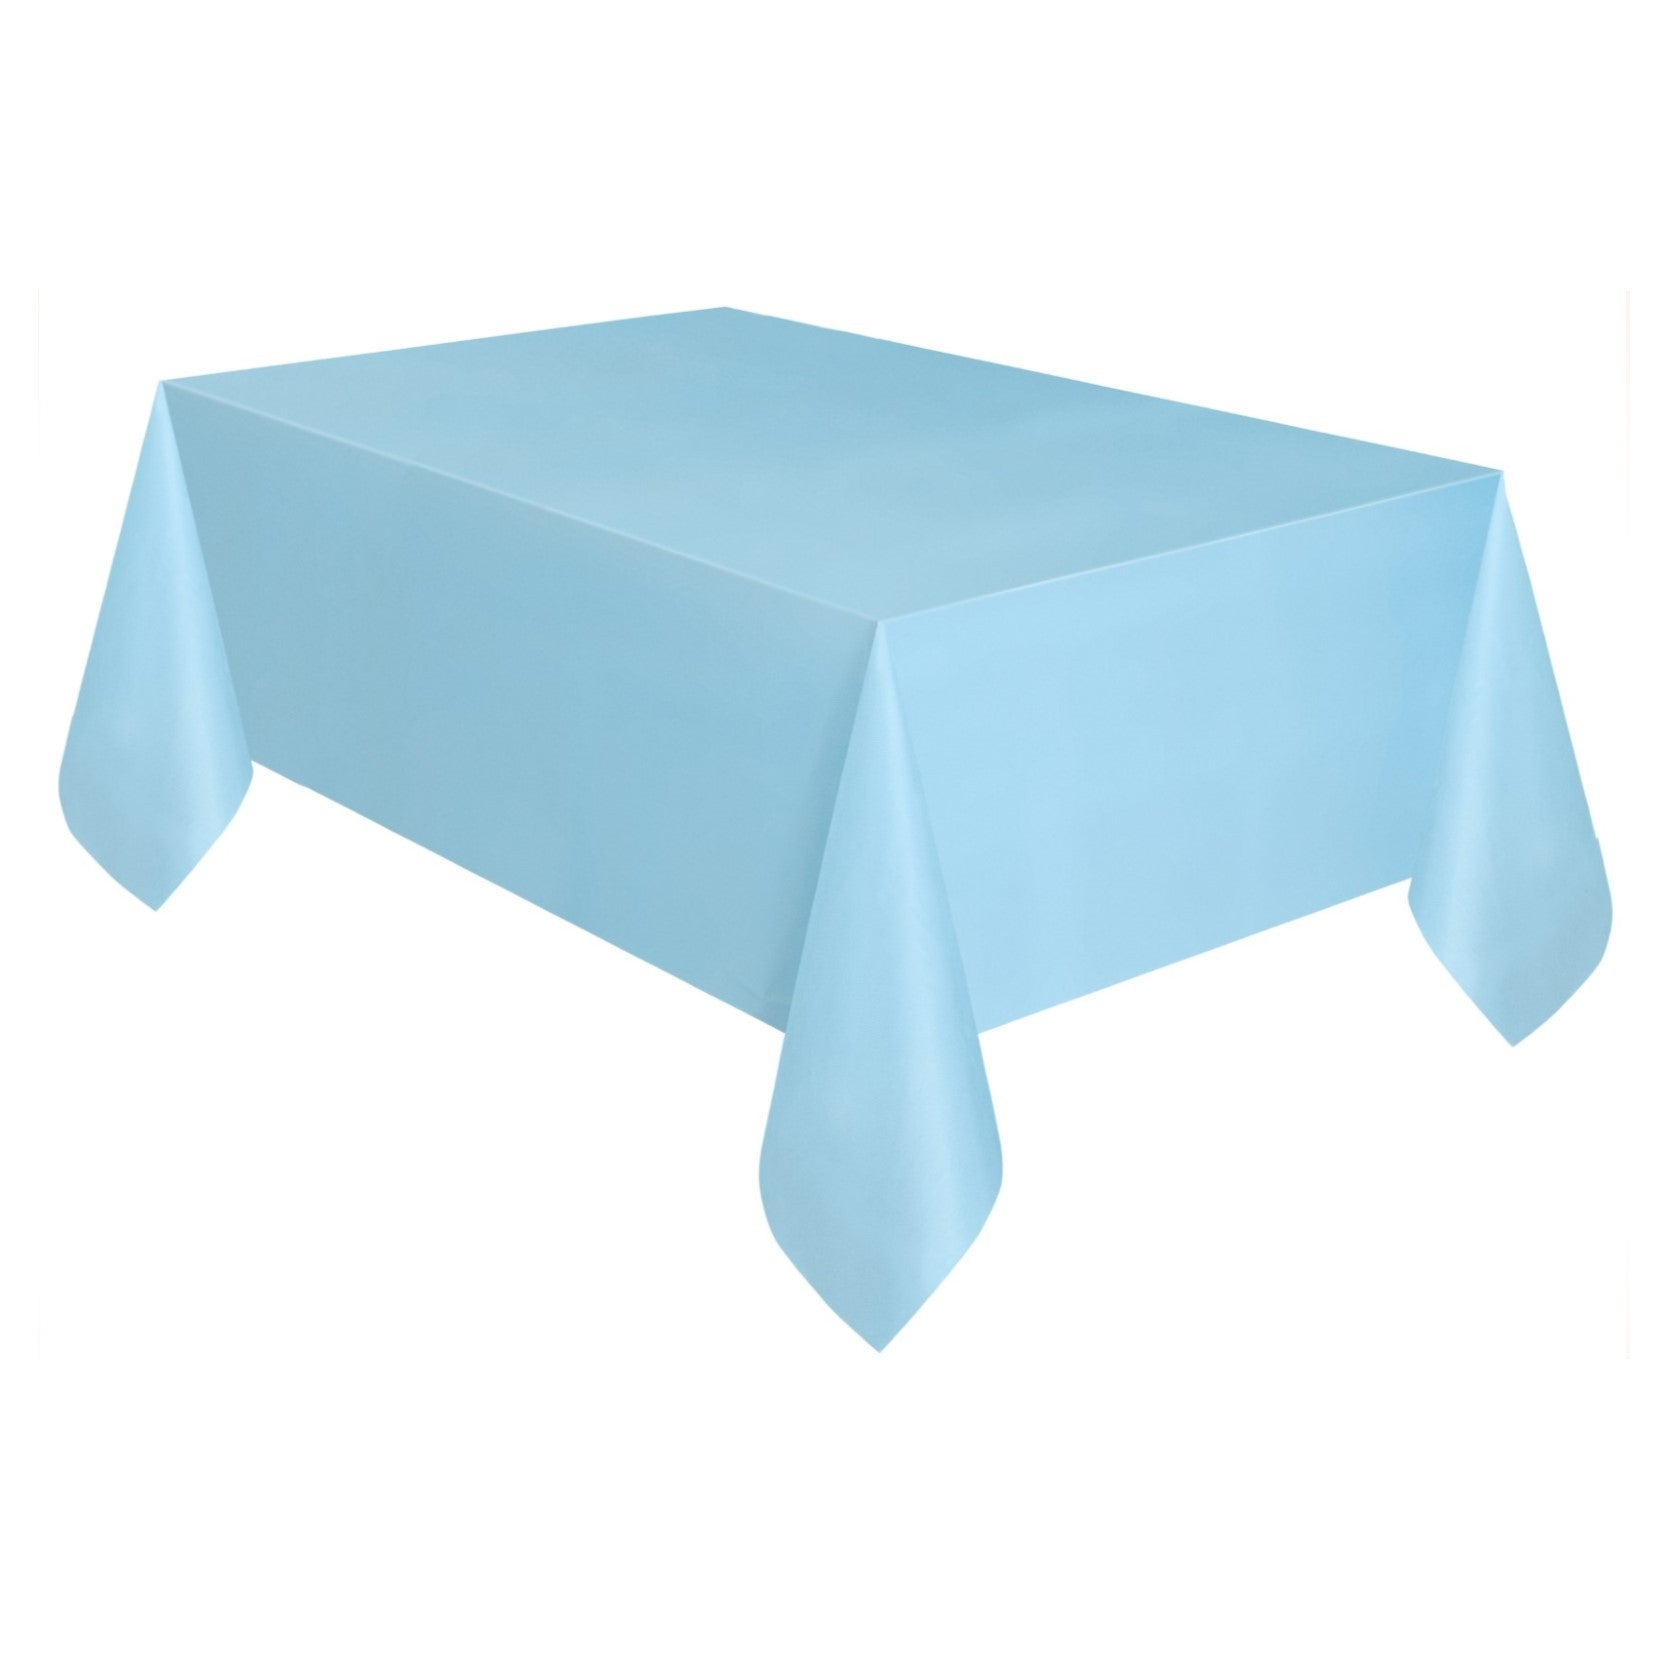 Plain Powder Blue Tablecover - Uk Baby Shower Co ltd